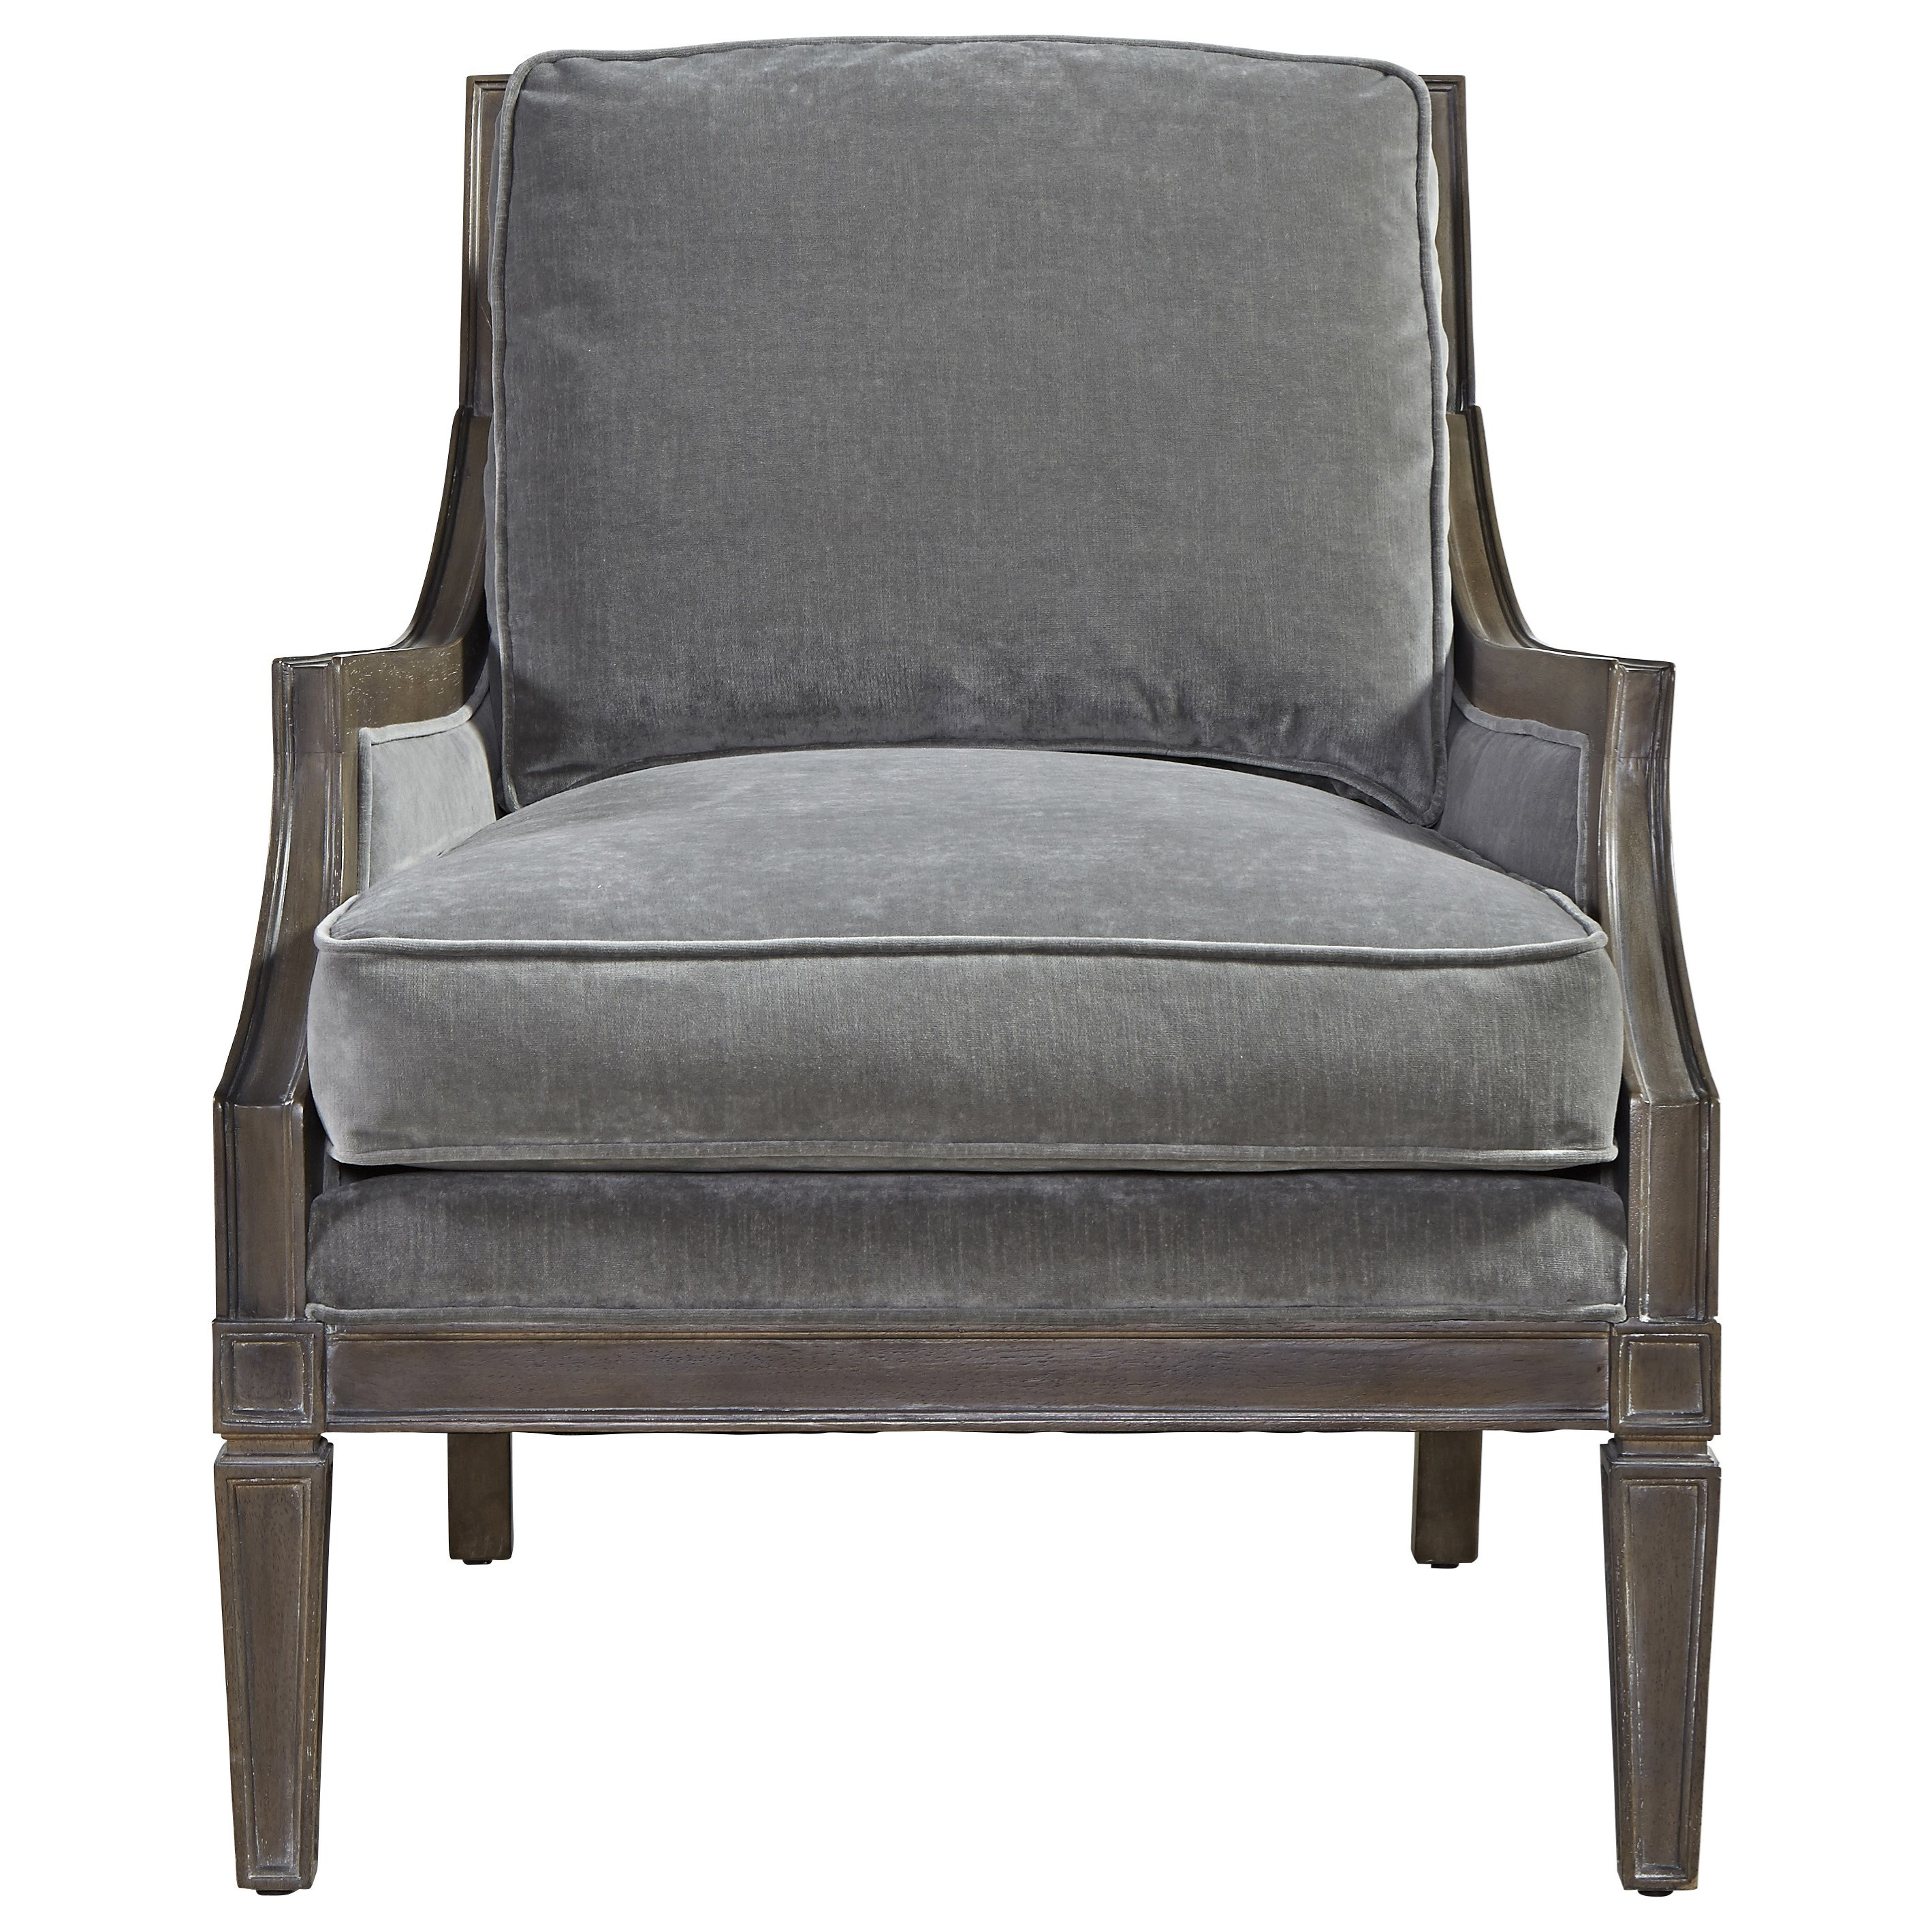 Prescott Crosspoint Accent Chair by Universal at Baer's Furniture